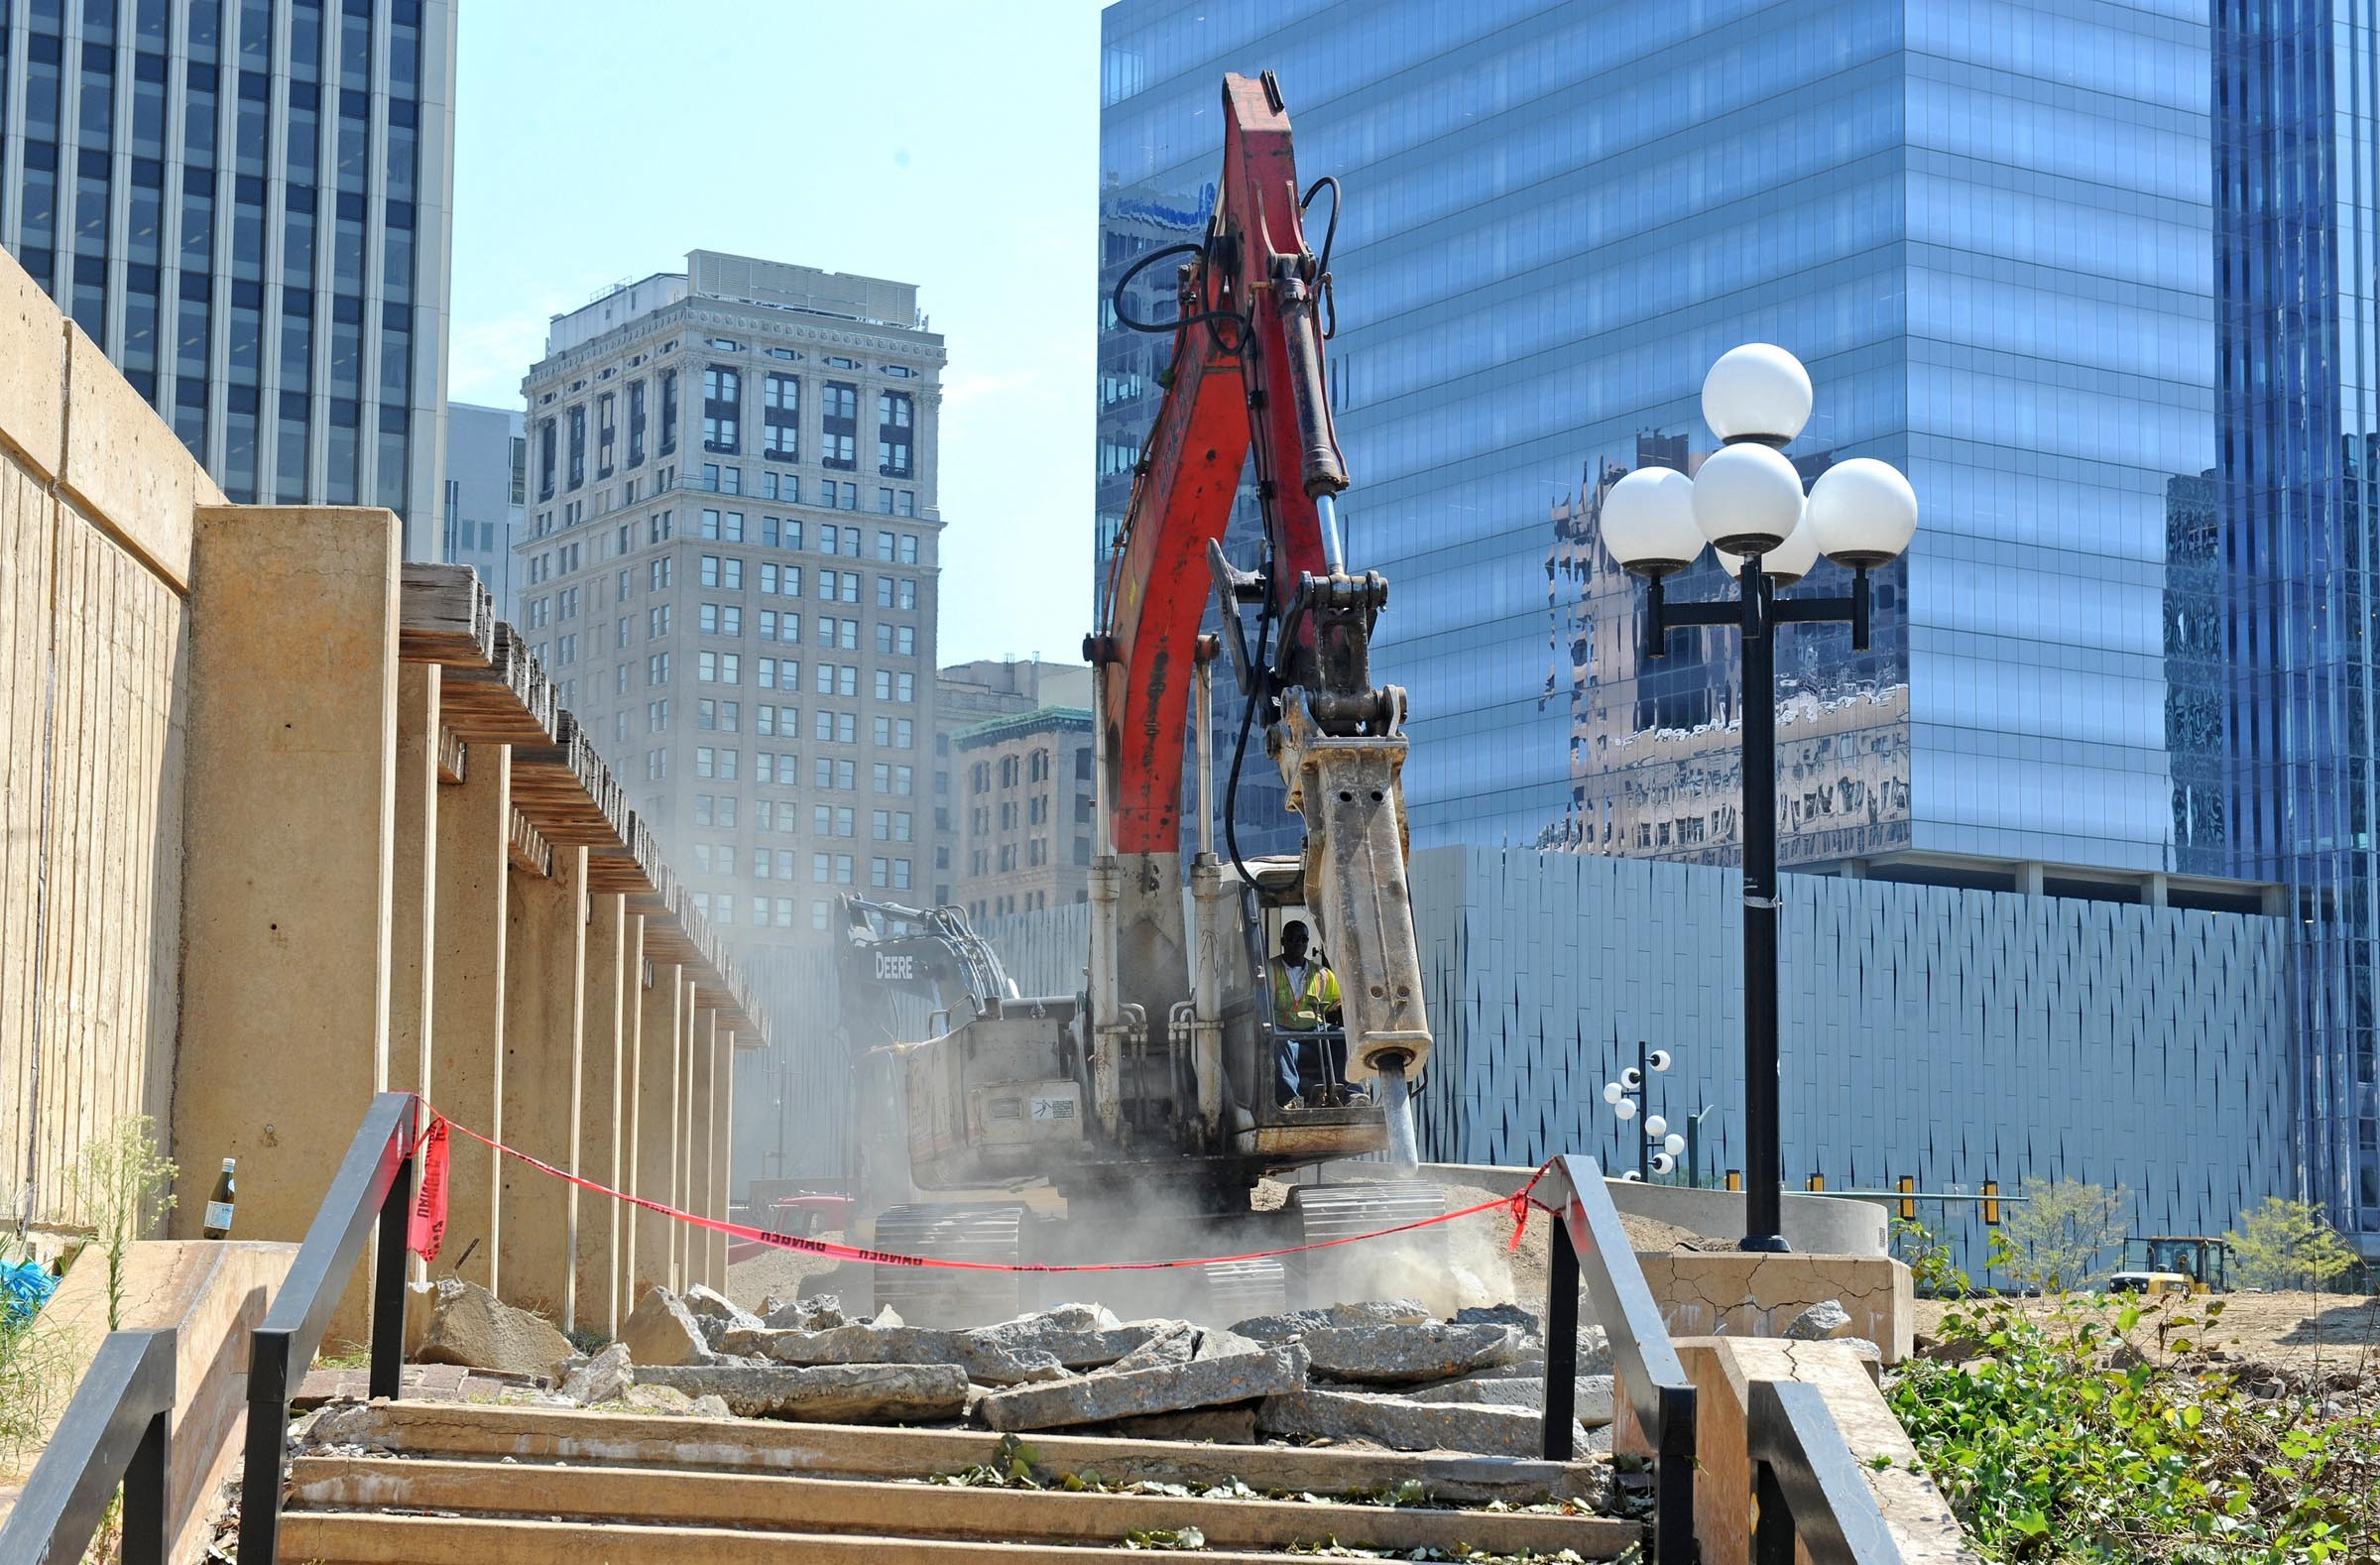 Immediately after Mayor Dwight Jones announced demolition of Kanawha Plaza on July 31, heavy equipment went into action. A reconfigured park, one of a number of public projects sparked by the cycling event, is scheduled for mid-September completion.